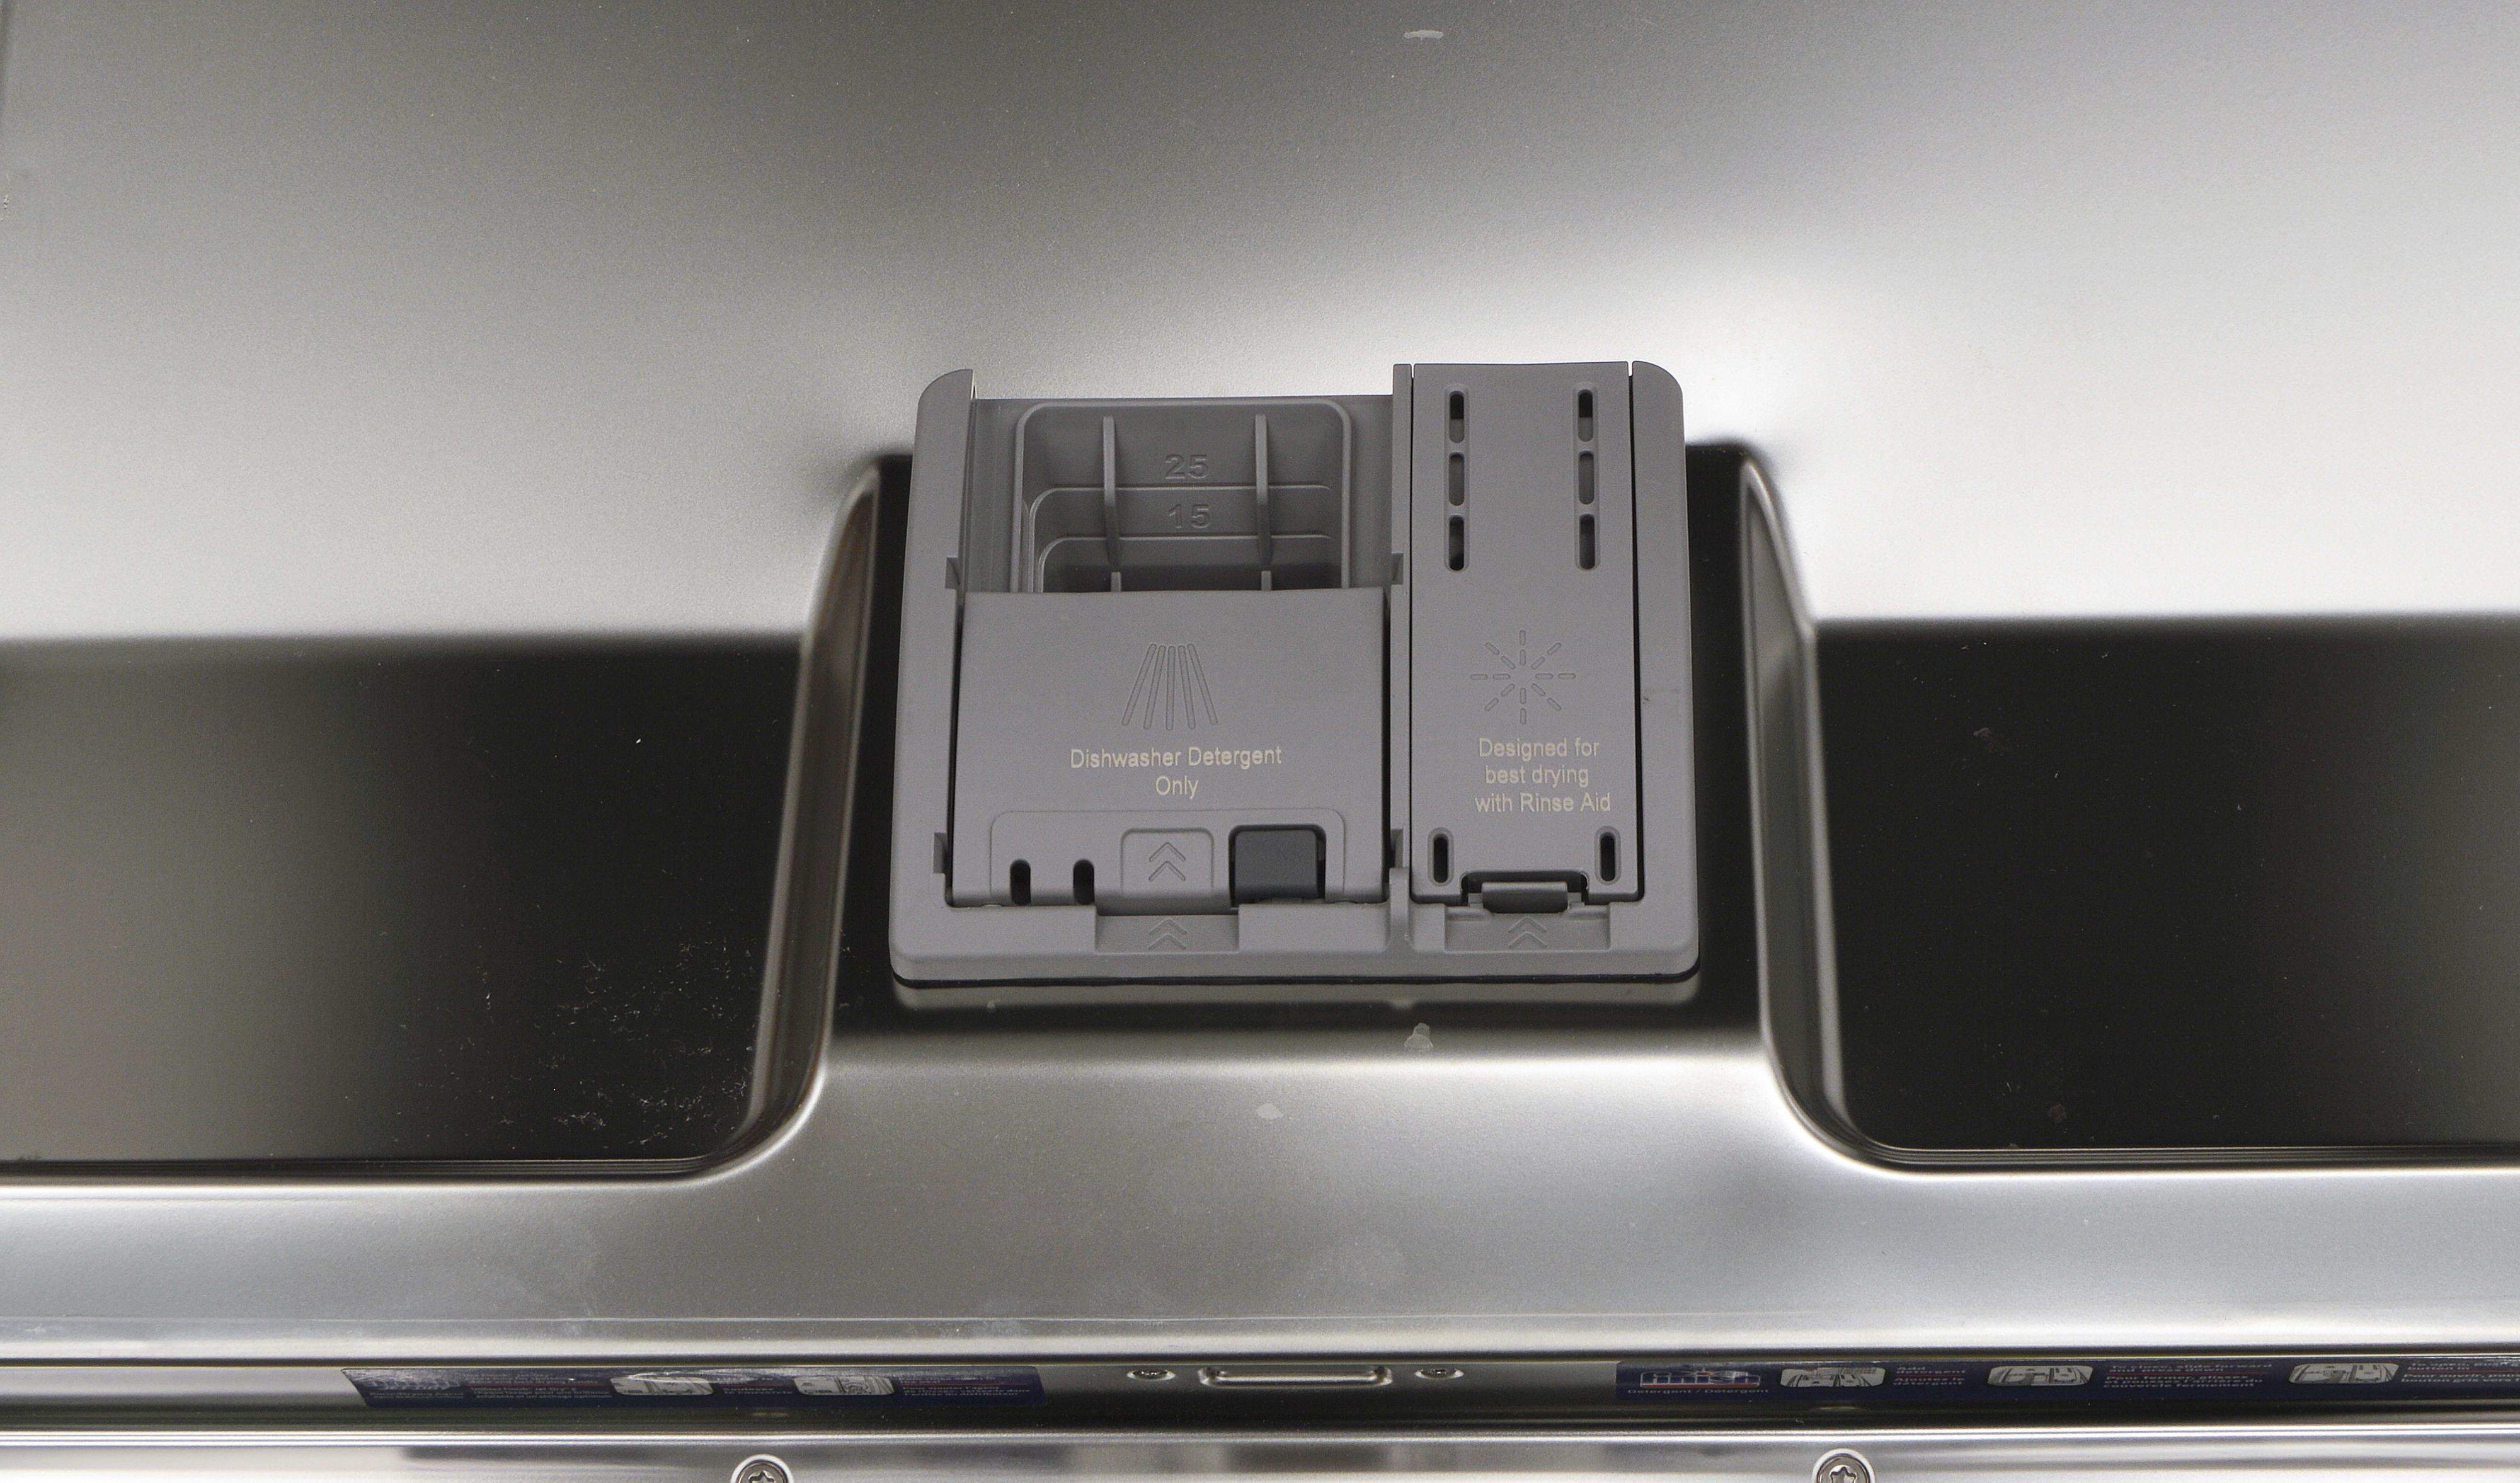 Rinse aid and detergent dispenser on the Thermador DWHD440MFM